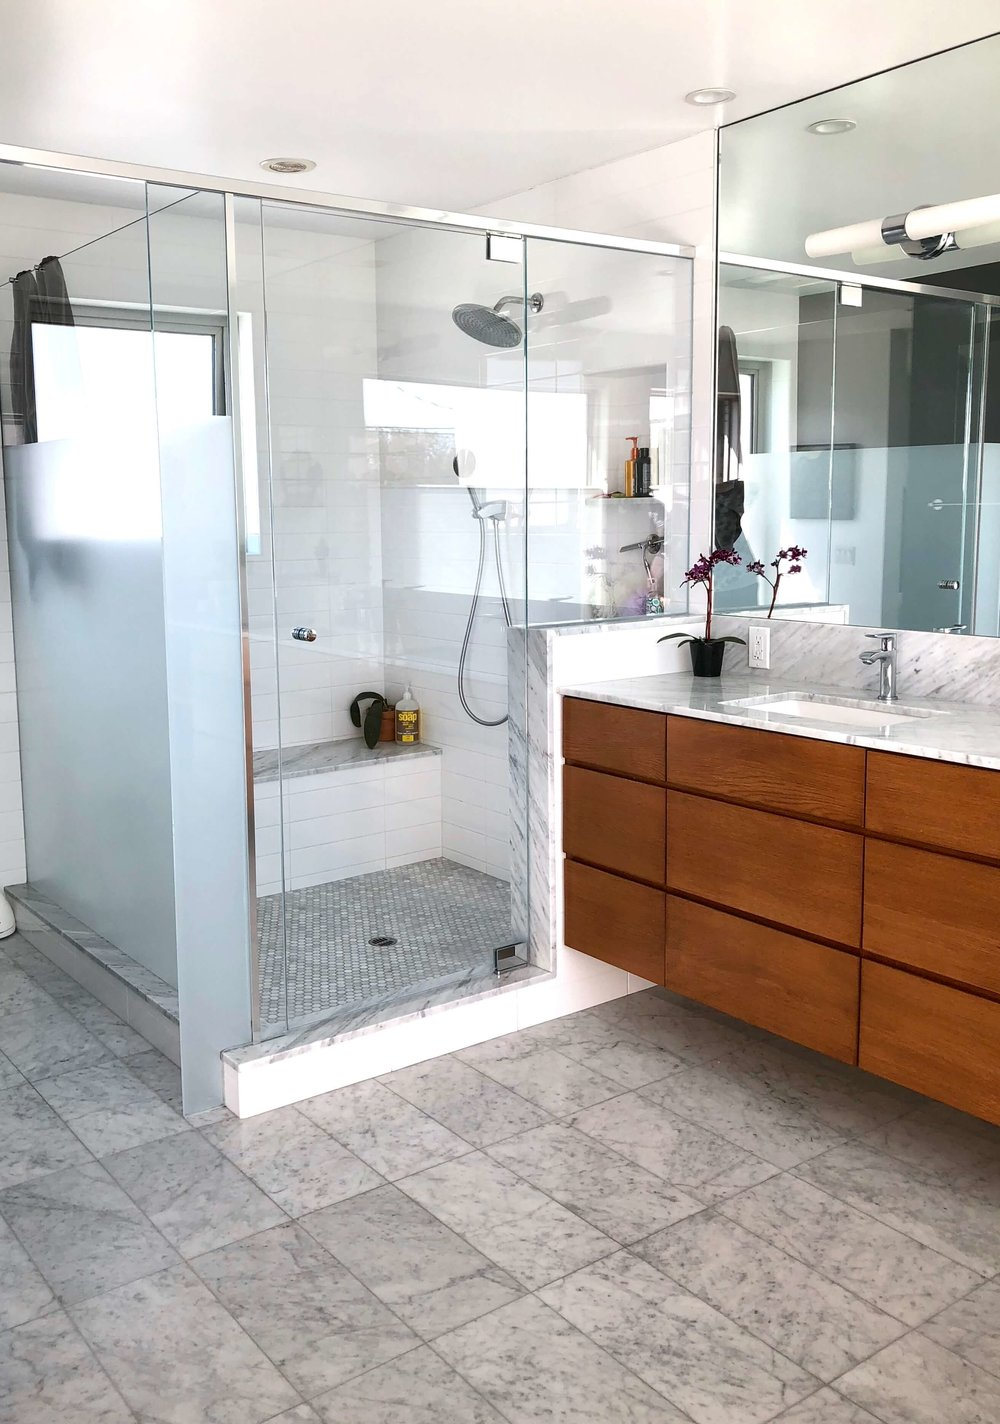 Cool toned modern bathroom made warm with wood vanity, Dwell on Design home tours, LA,  AB Design Studio